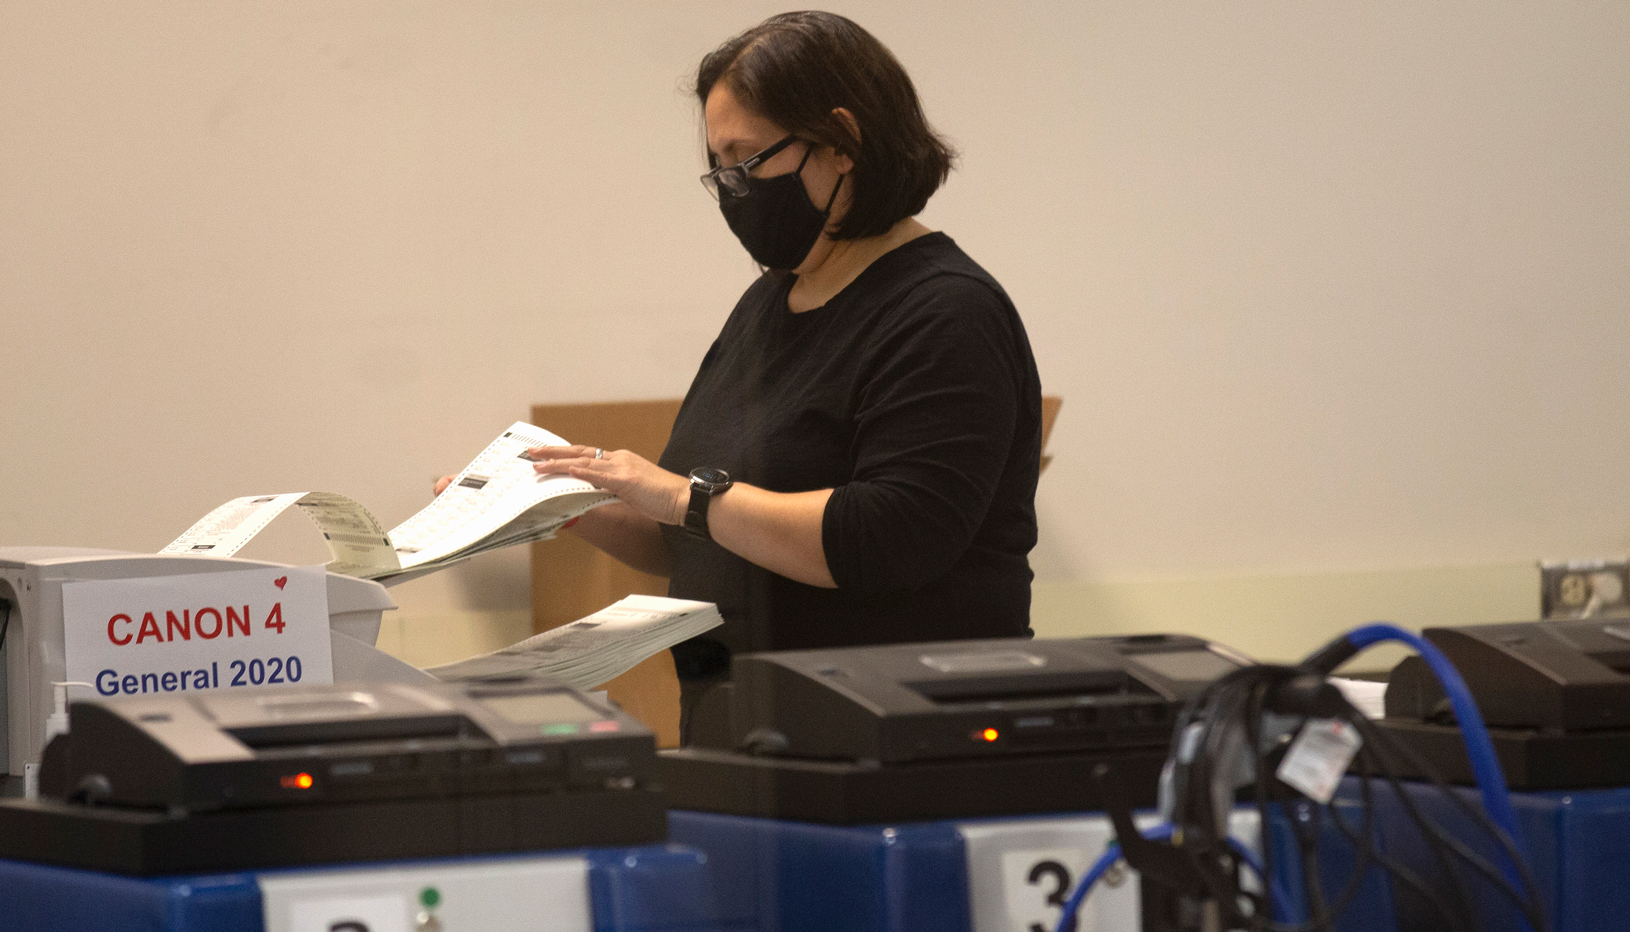 A poll worker scans ballots at the Maricopa County Recorders Office where votes in the general election are being counted, in Phoenix, Thursday, Nov. 5, 2020.